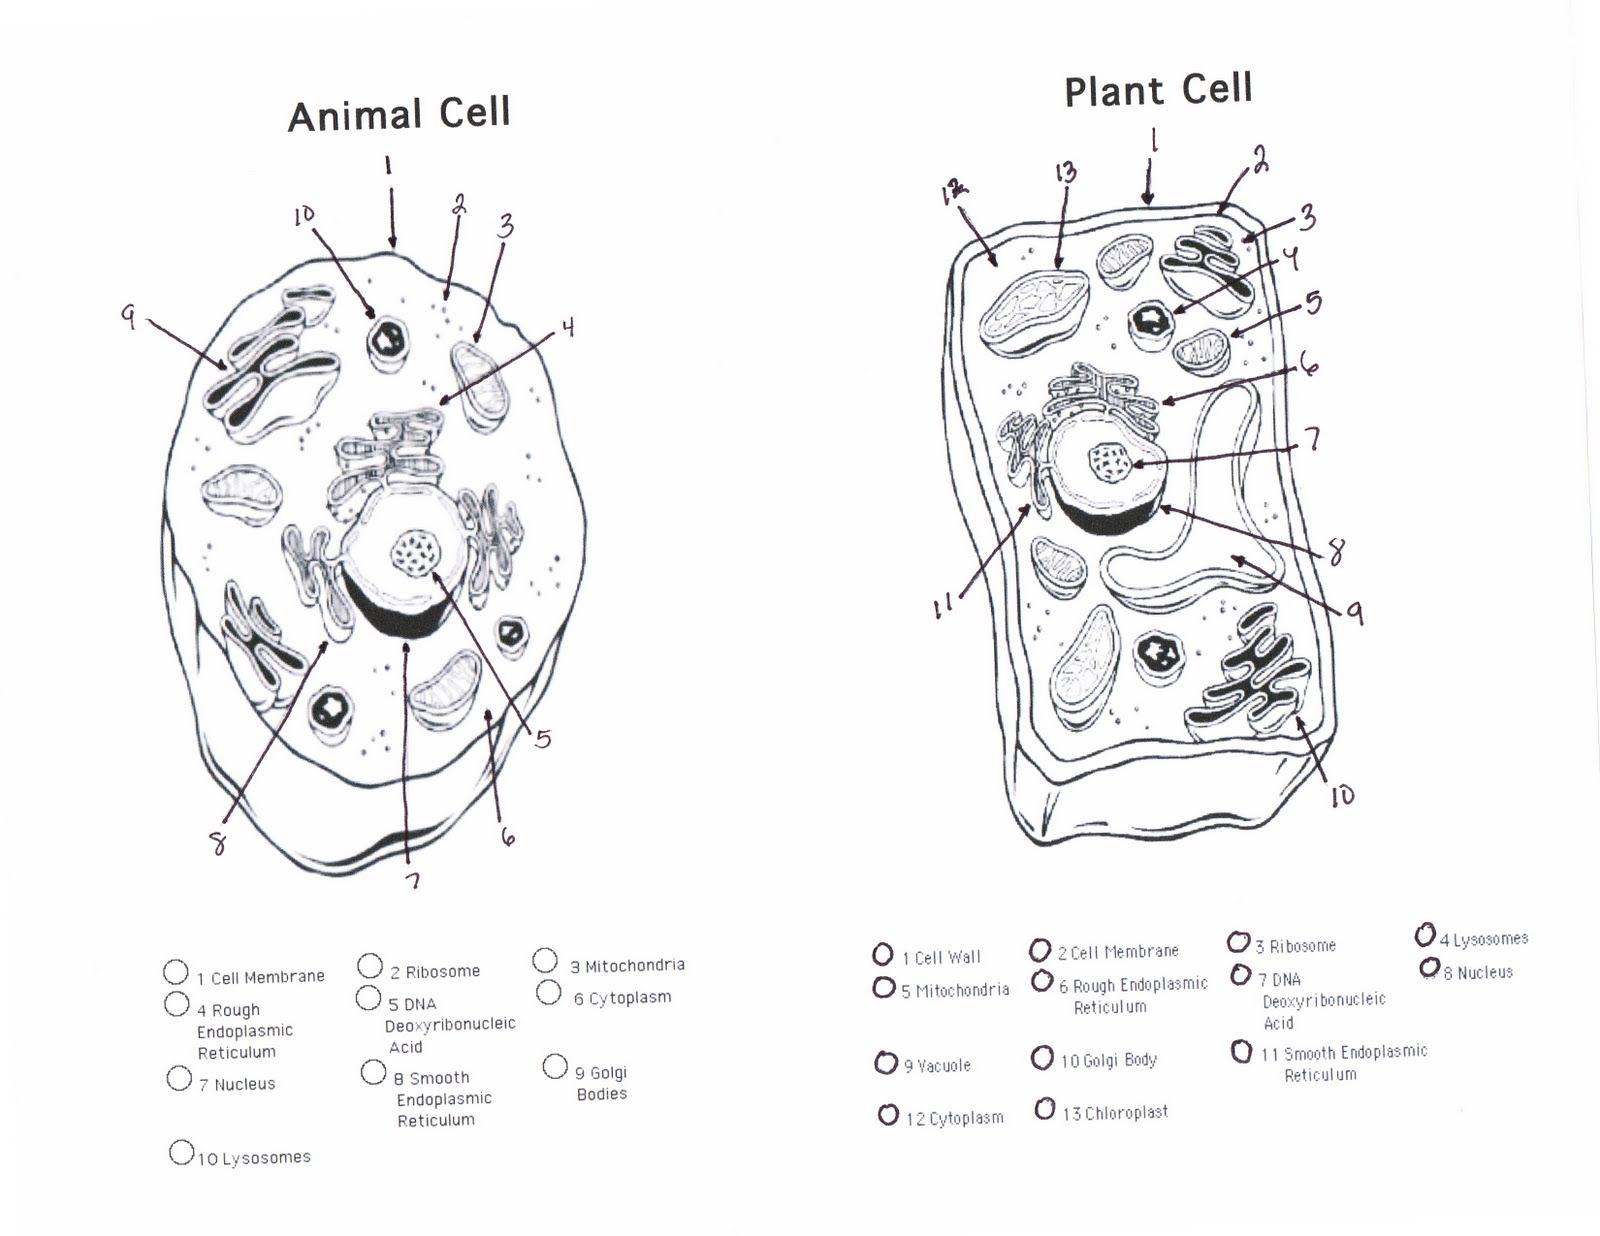 plant and animal cell diagram unlabeled